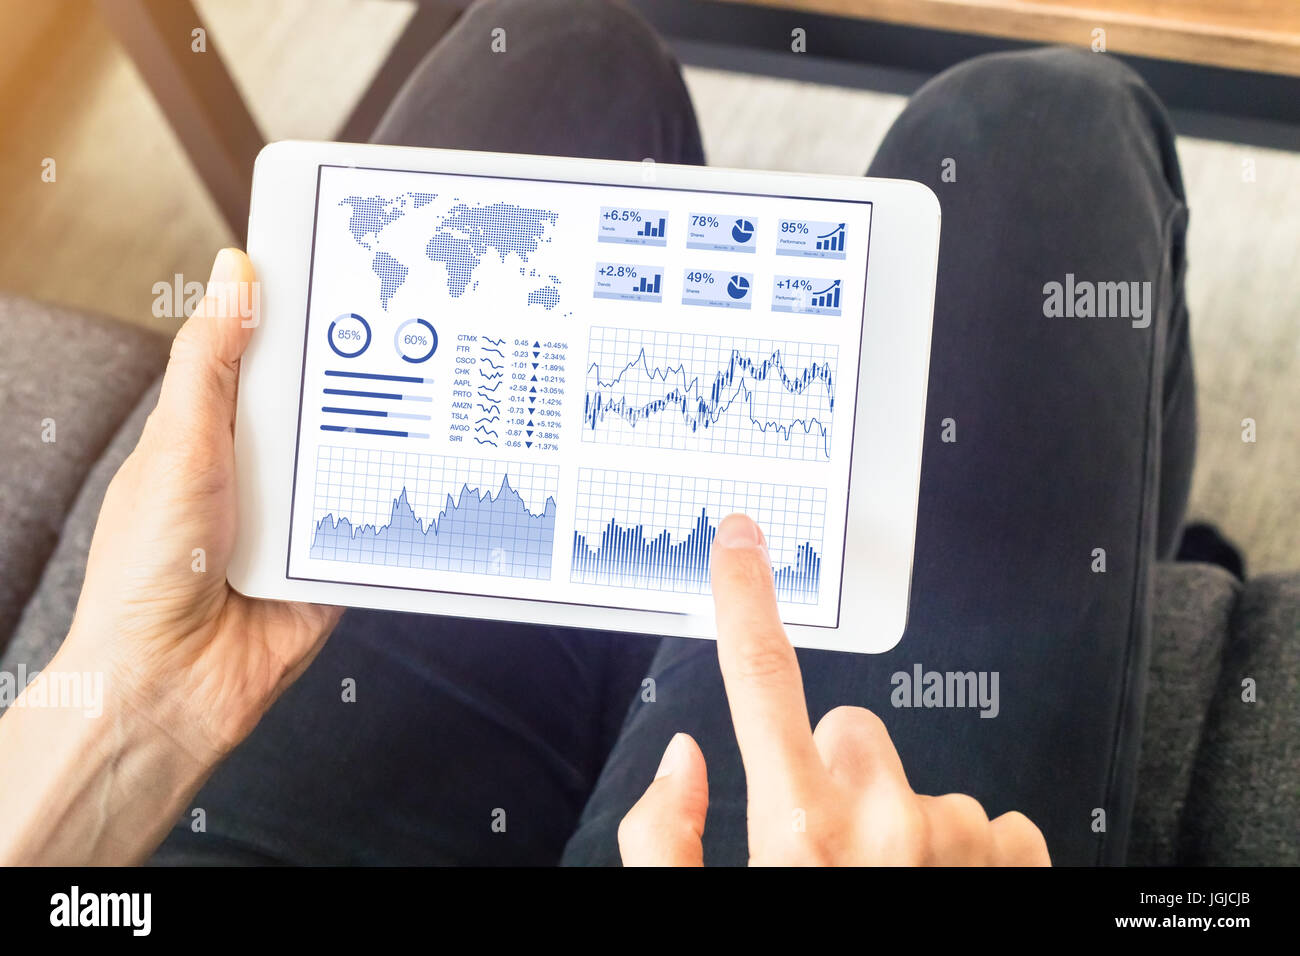 Person using financial dashboard with charts and key performance indicators (KPI) on tablet computer screen at home - Stock Image